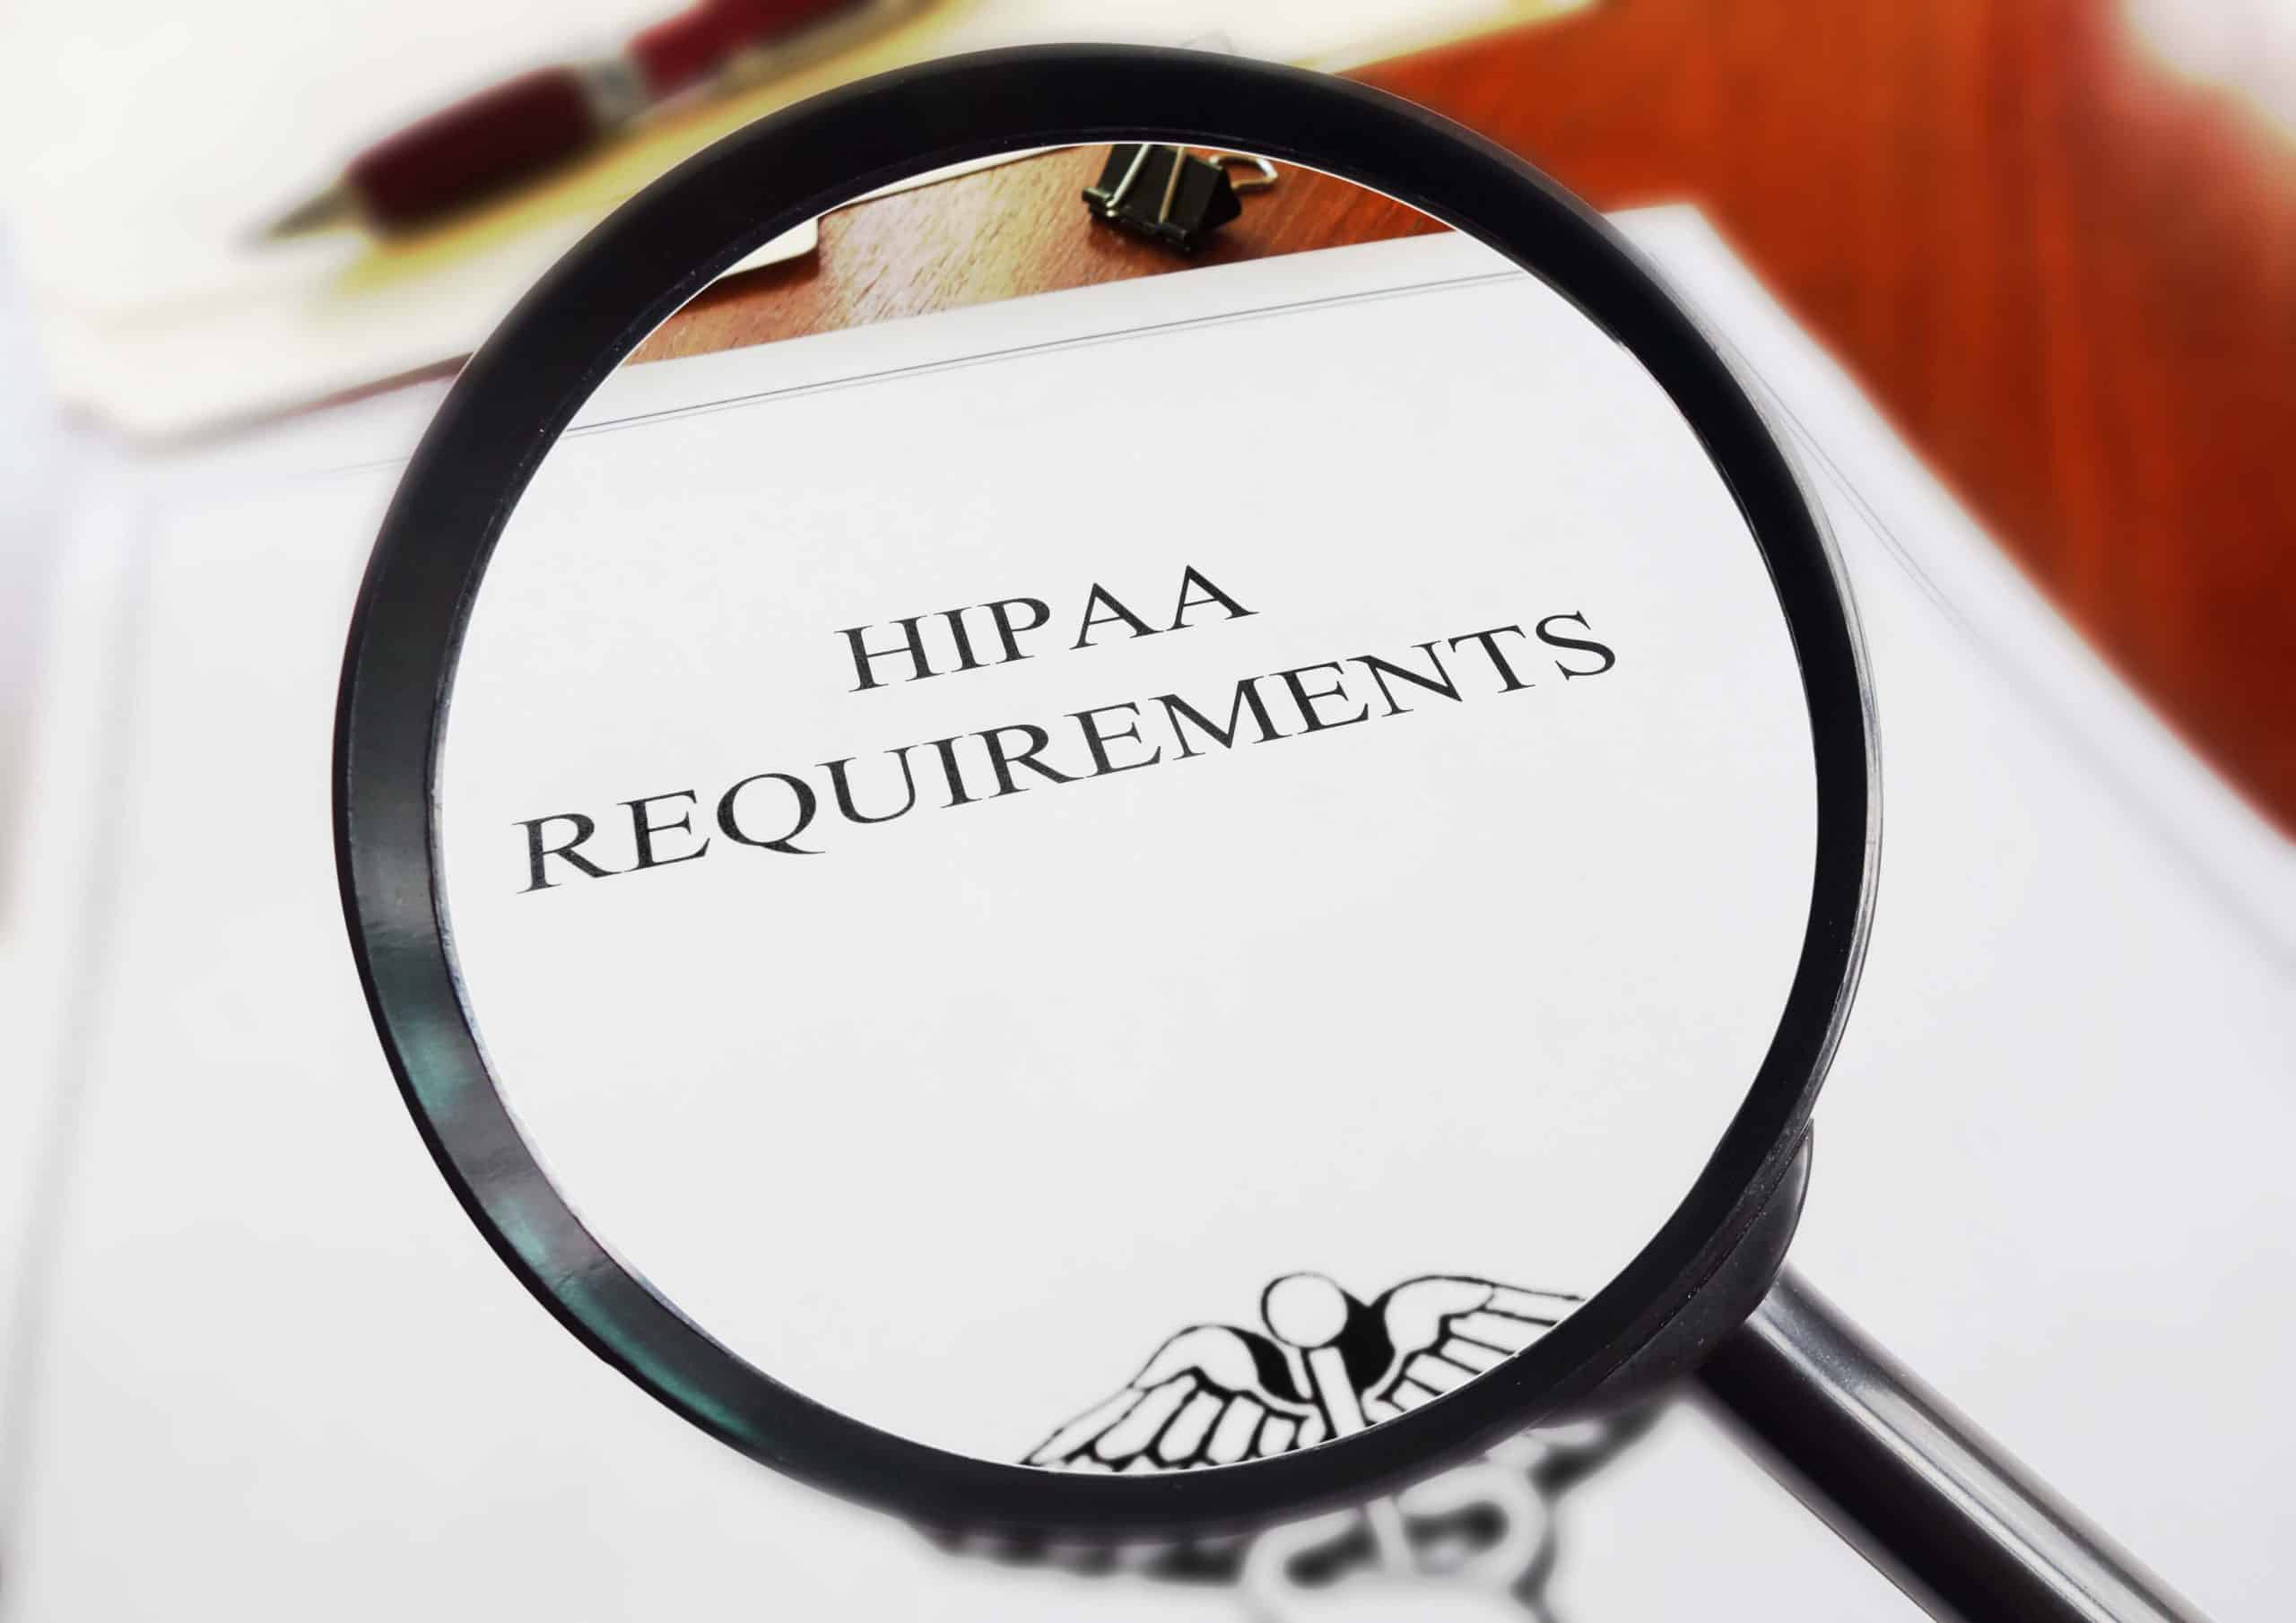 HIPAA requirements on a document under a magnifying glass.